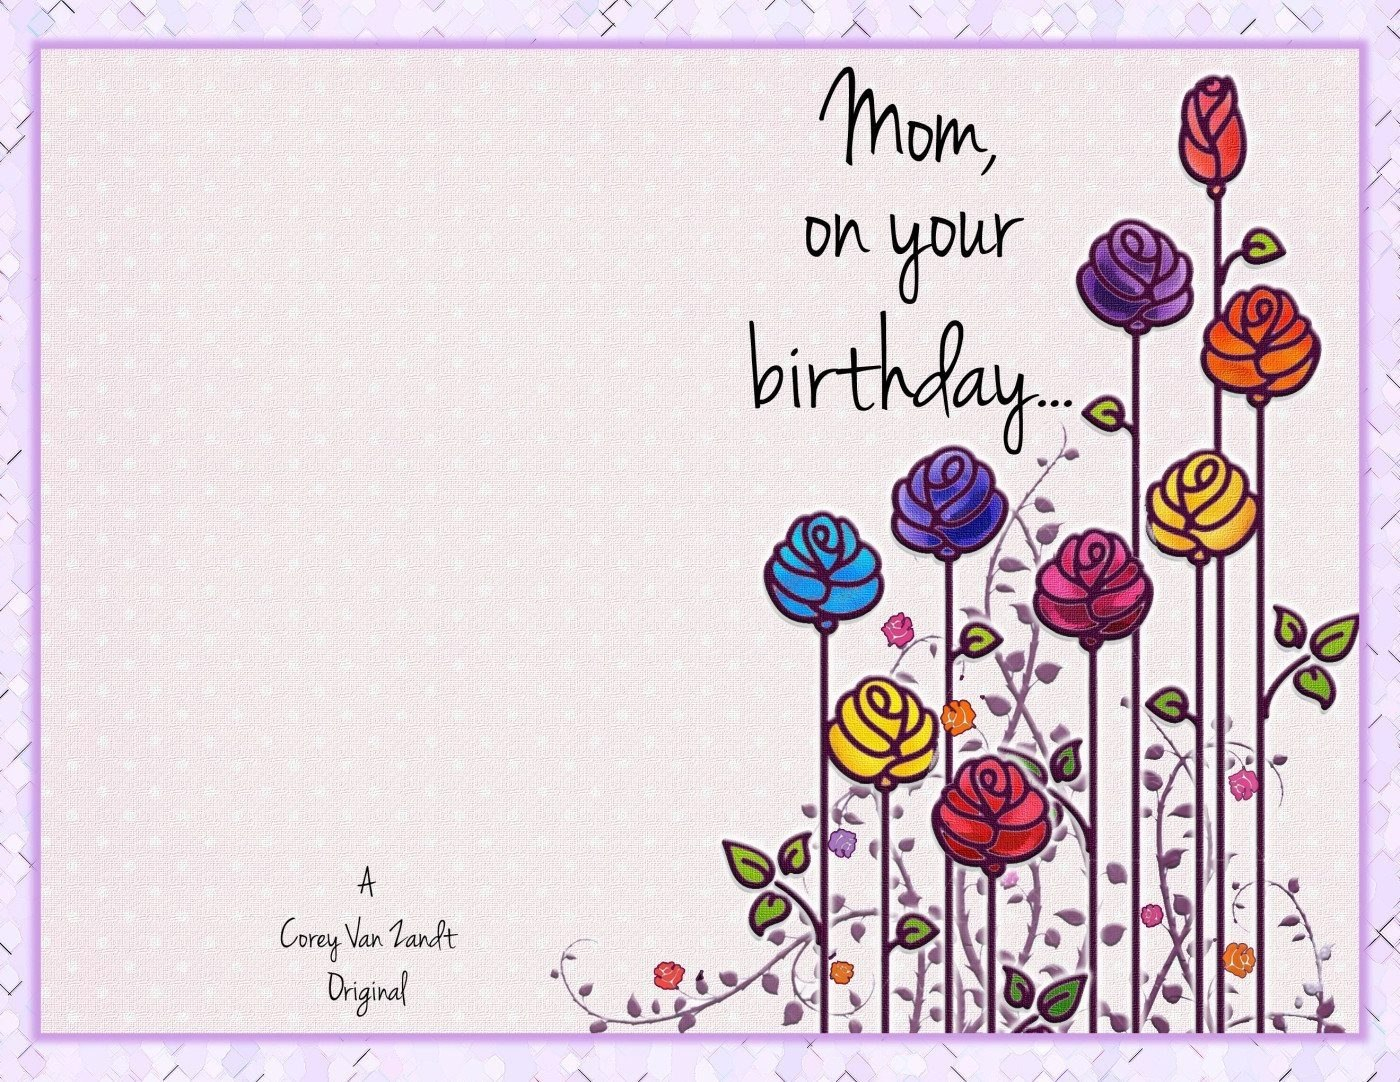 Mom Birthday Card Template  Theveliger Within Mom Birthday Card Template